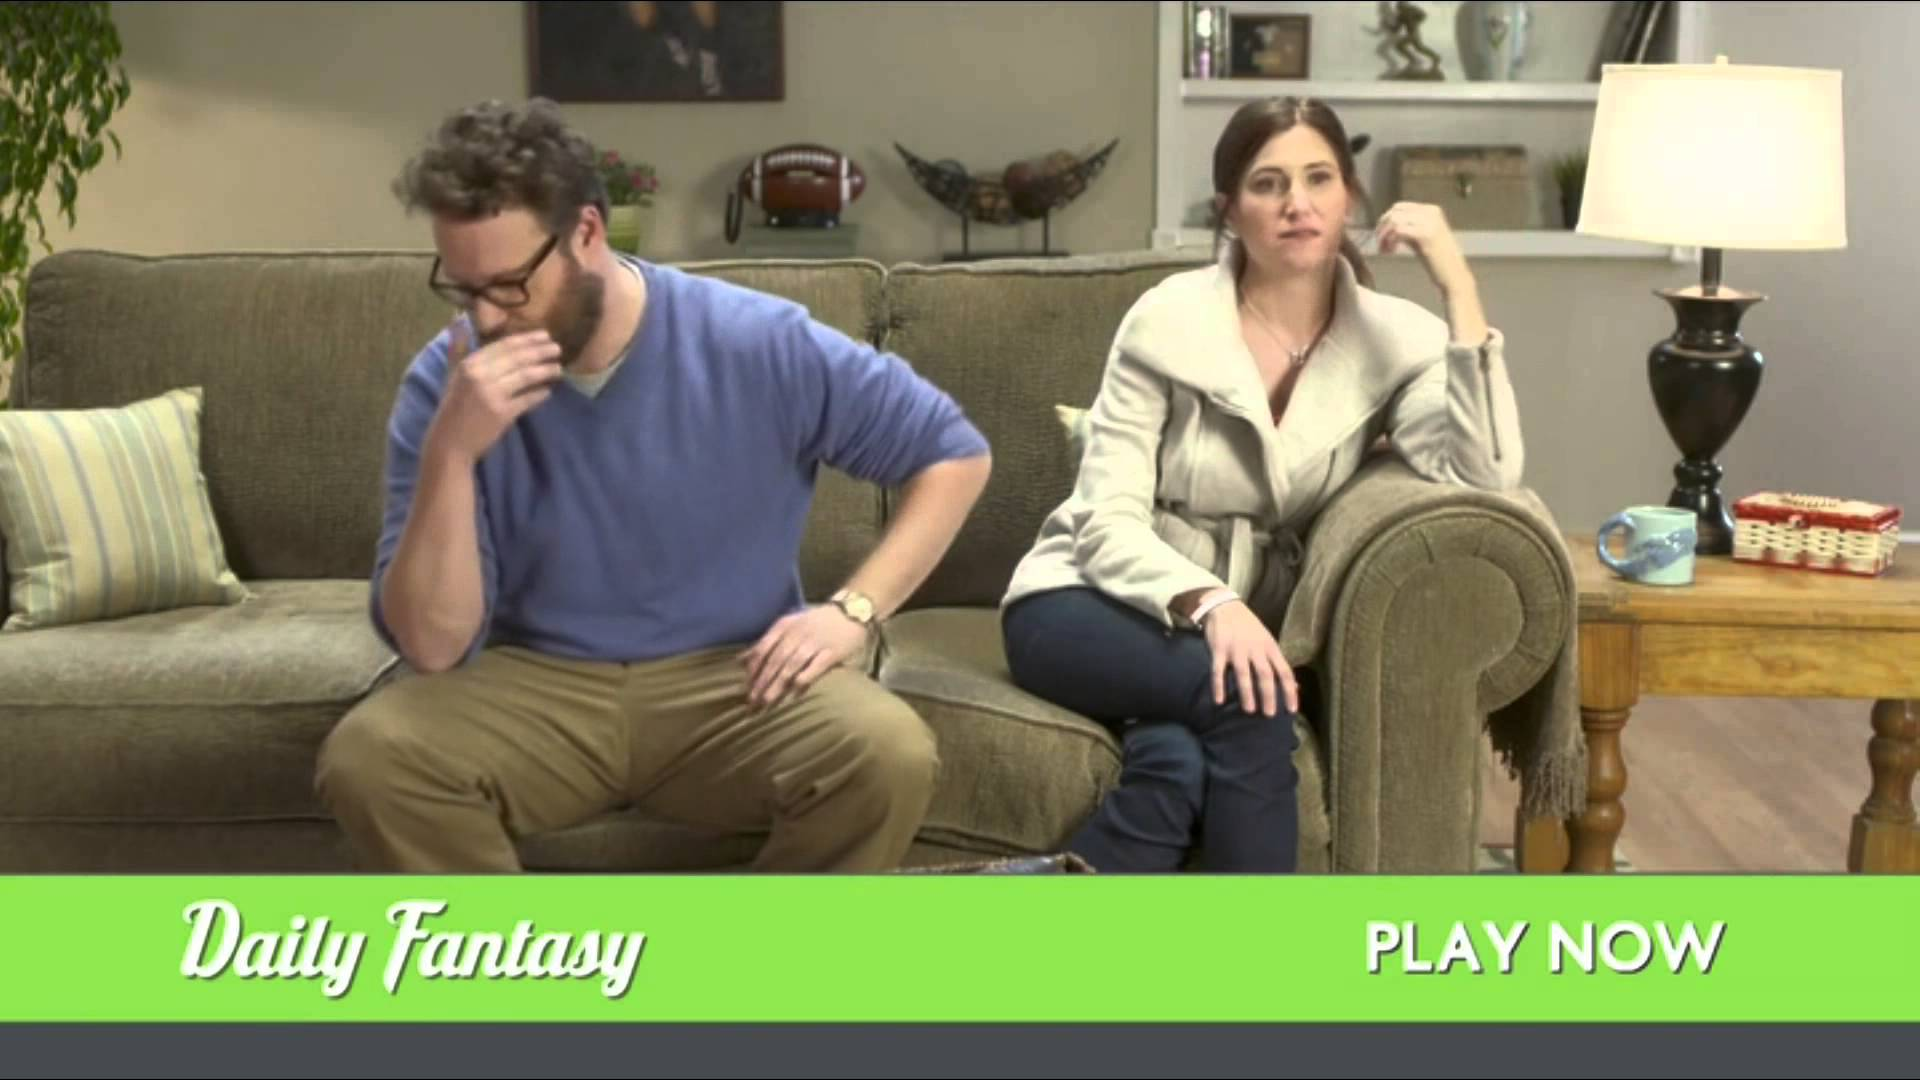 John Oliver's hilarious Daily Fantasy Sports commercial starring Seth Rogen